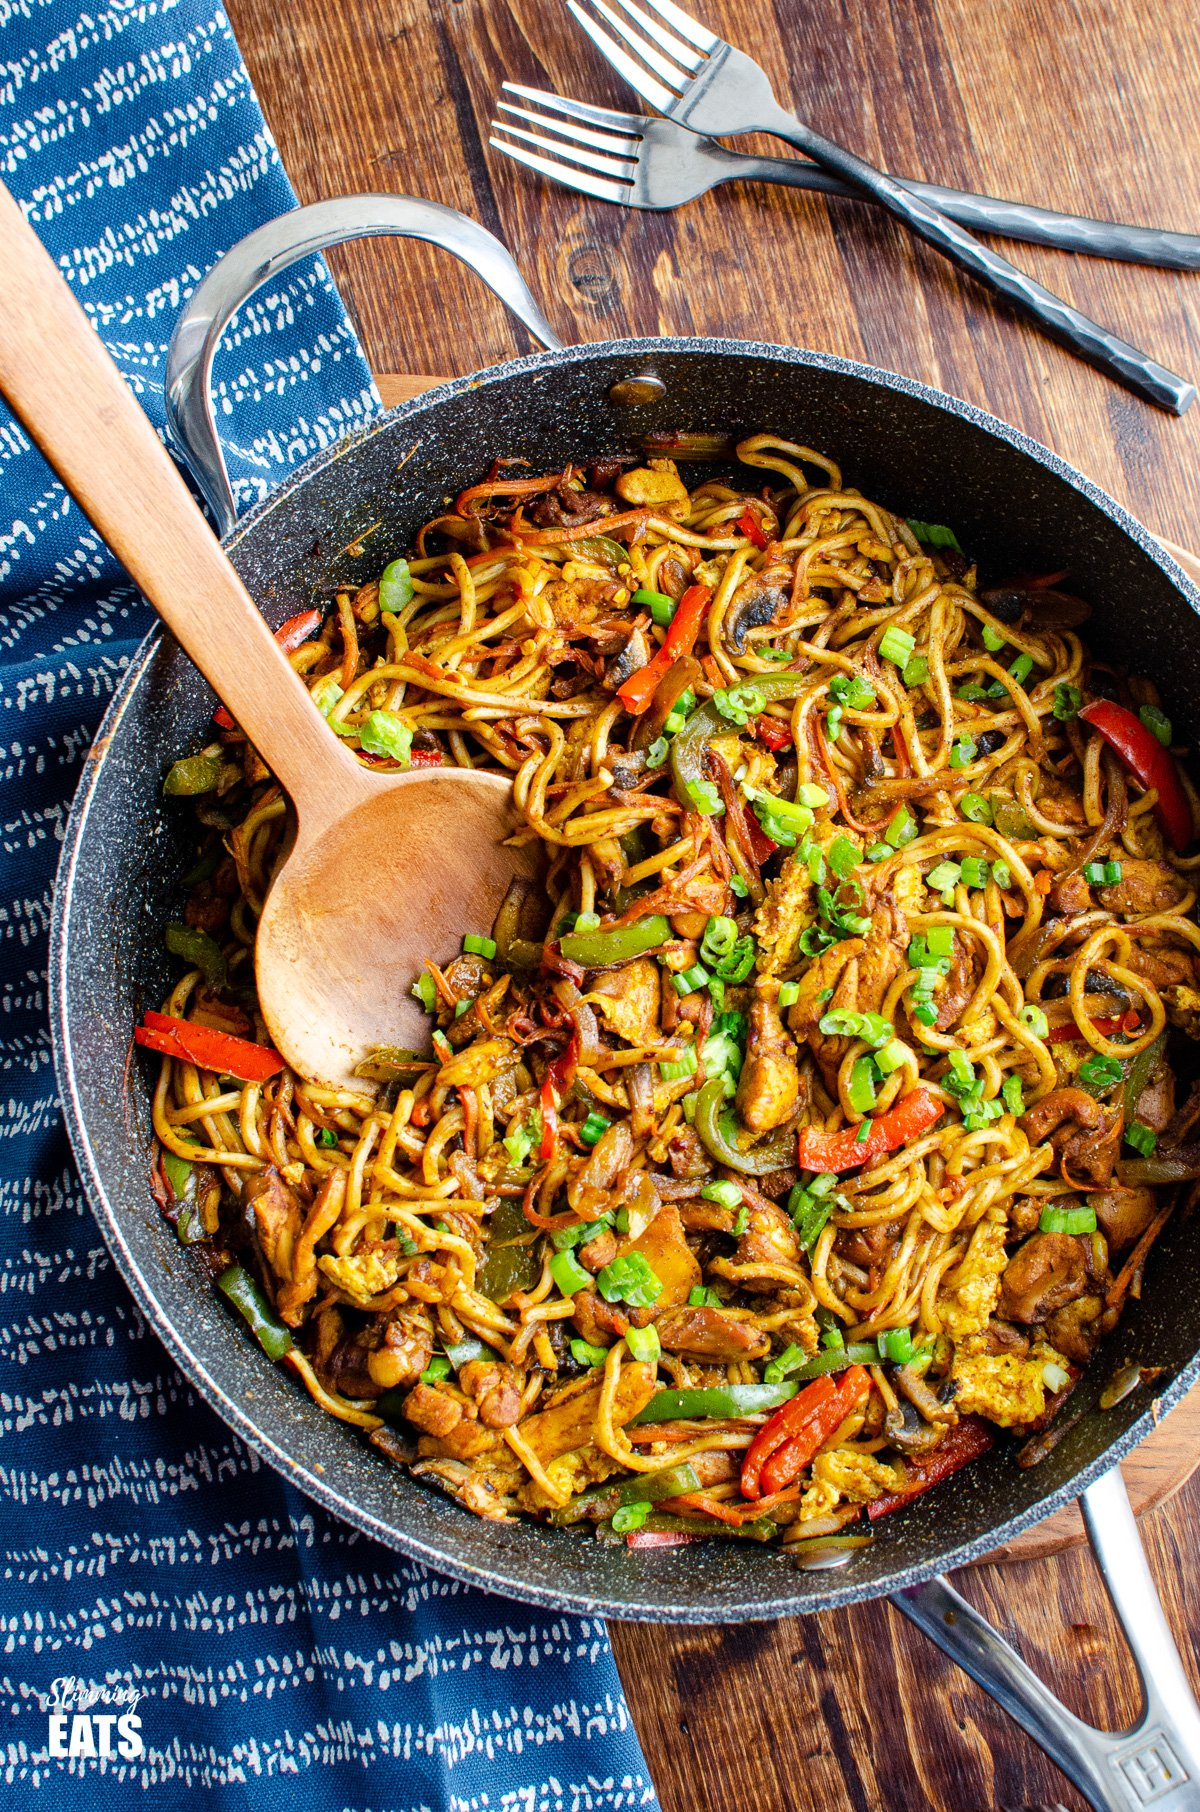 Delicious Singapore Chicken Noodles in a frying pan with wooden spoon